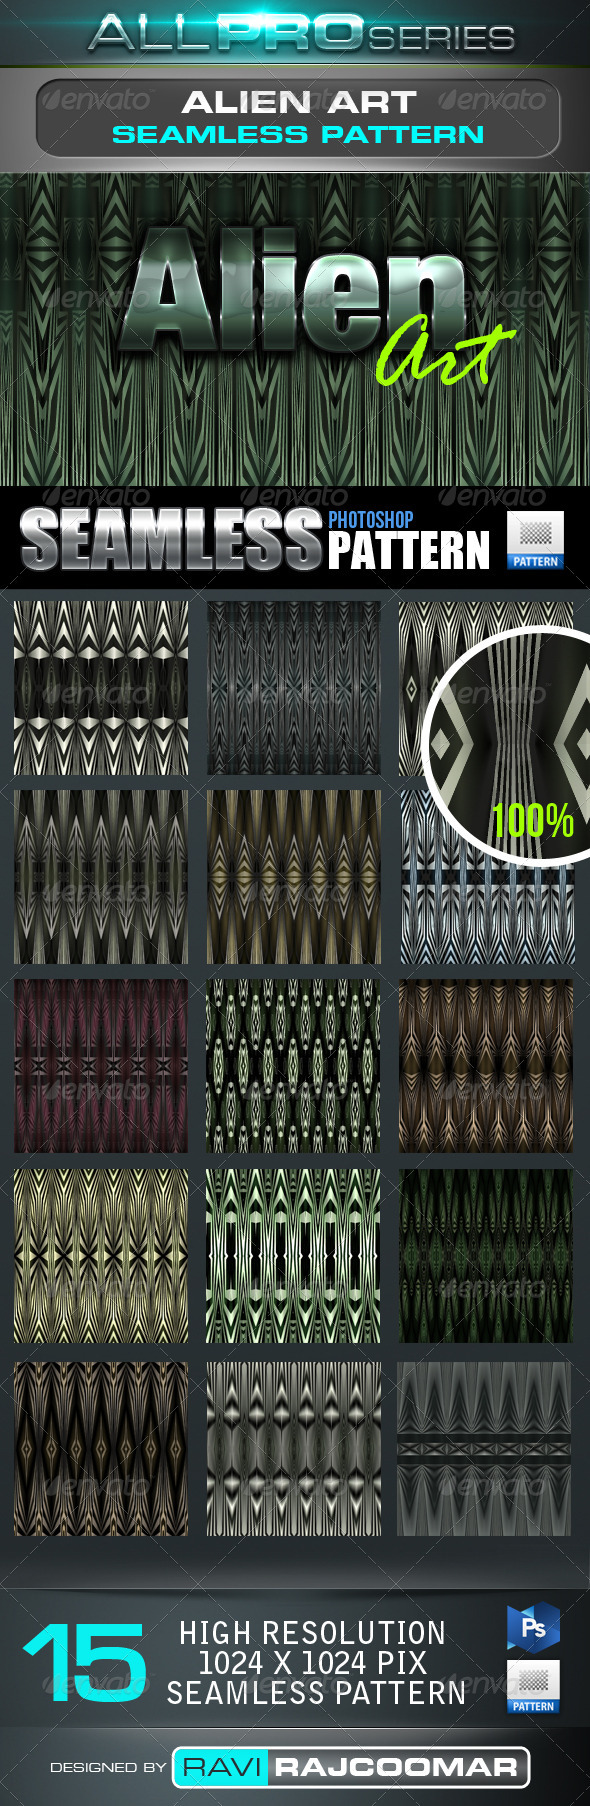 Alien Art Seamless-Tileable Photoshop Patern - Techno / Futuristic Textures / Fills / Patterns